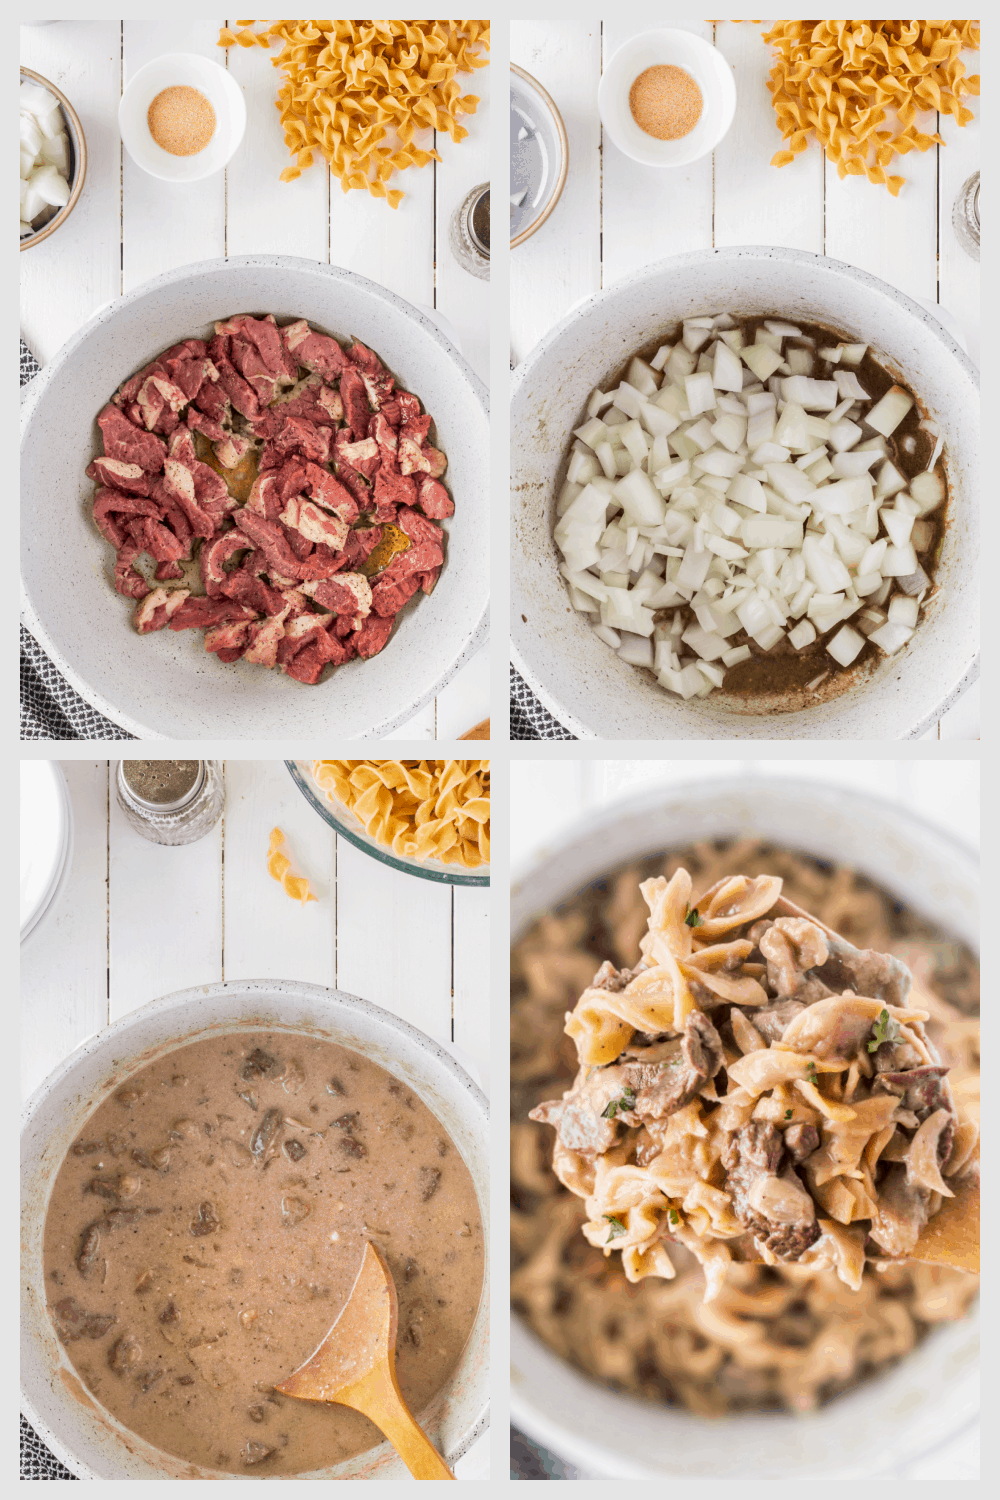 This is a one pot meal that's so good my family assumes it's not good for them...but guess what, it's completely guilt-free. Personally, we don't like mushrooms, so I make the beef stroganoff without mushrooms, but if you prefer mushrooms, it would be easy to add them. Using the traditional egg noodles, this stroganoff is everything you expect a Fall comfort food (or any time of the year) to be and more.  via @fitfoundme